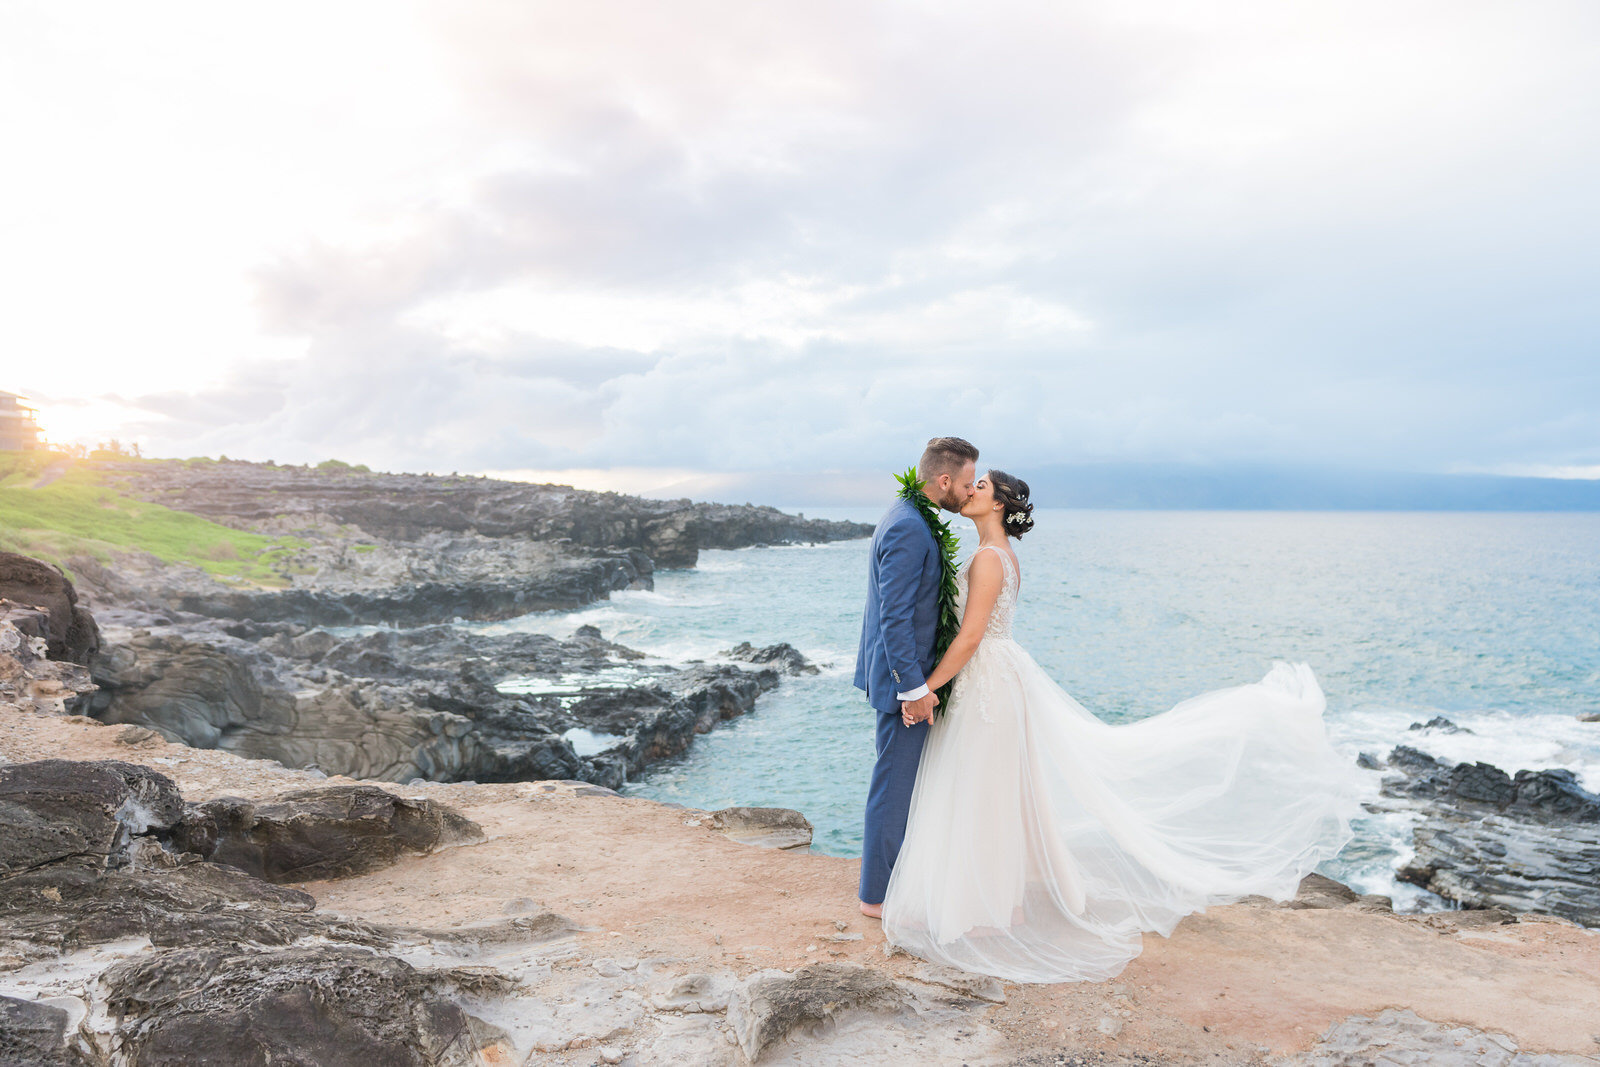 Maui wedding packages by Simple Maui Wedding